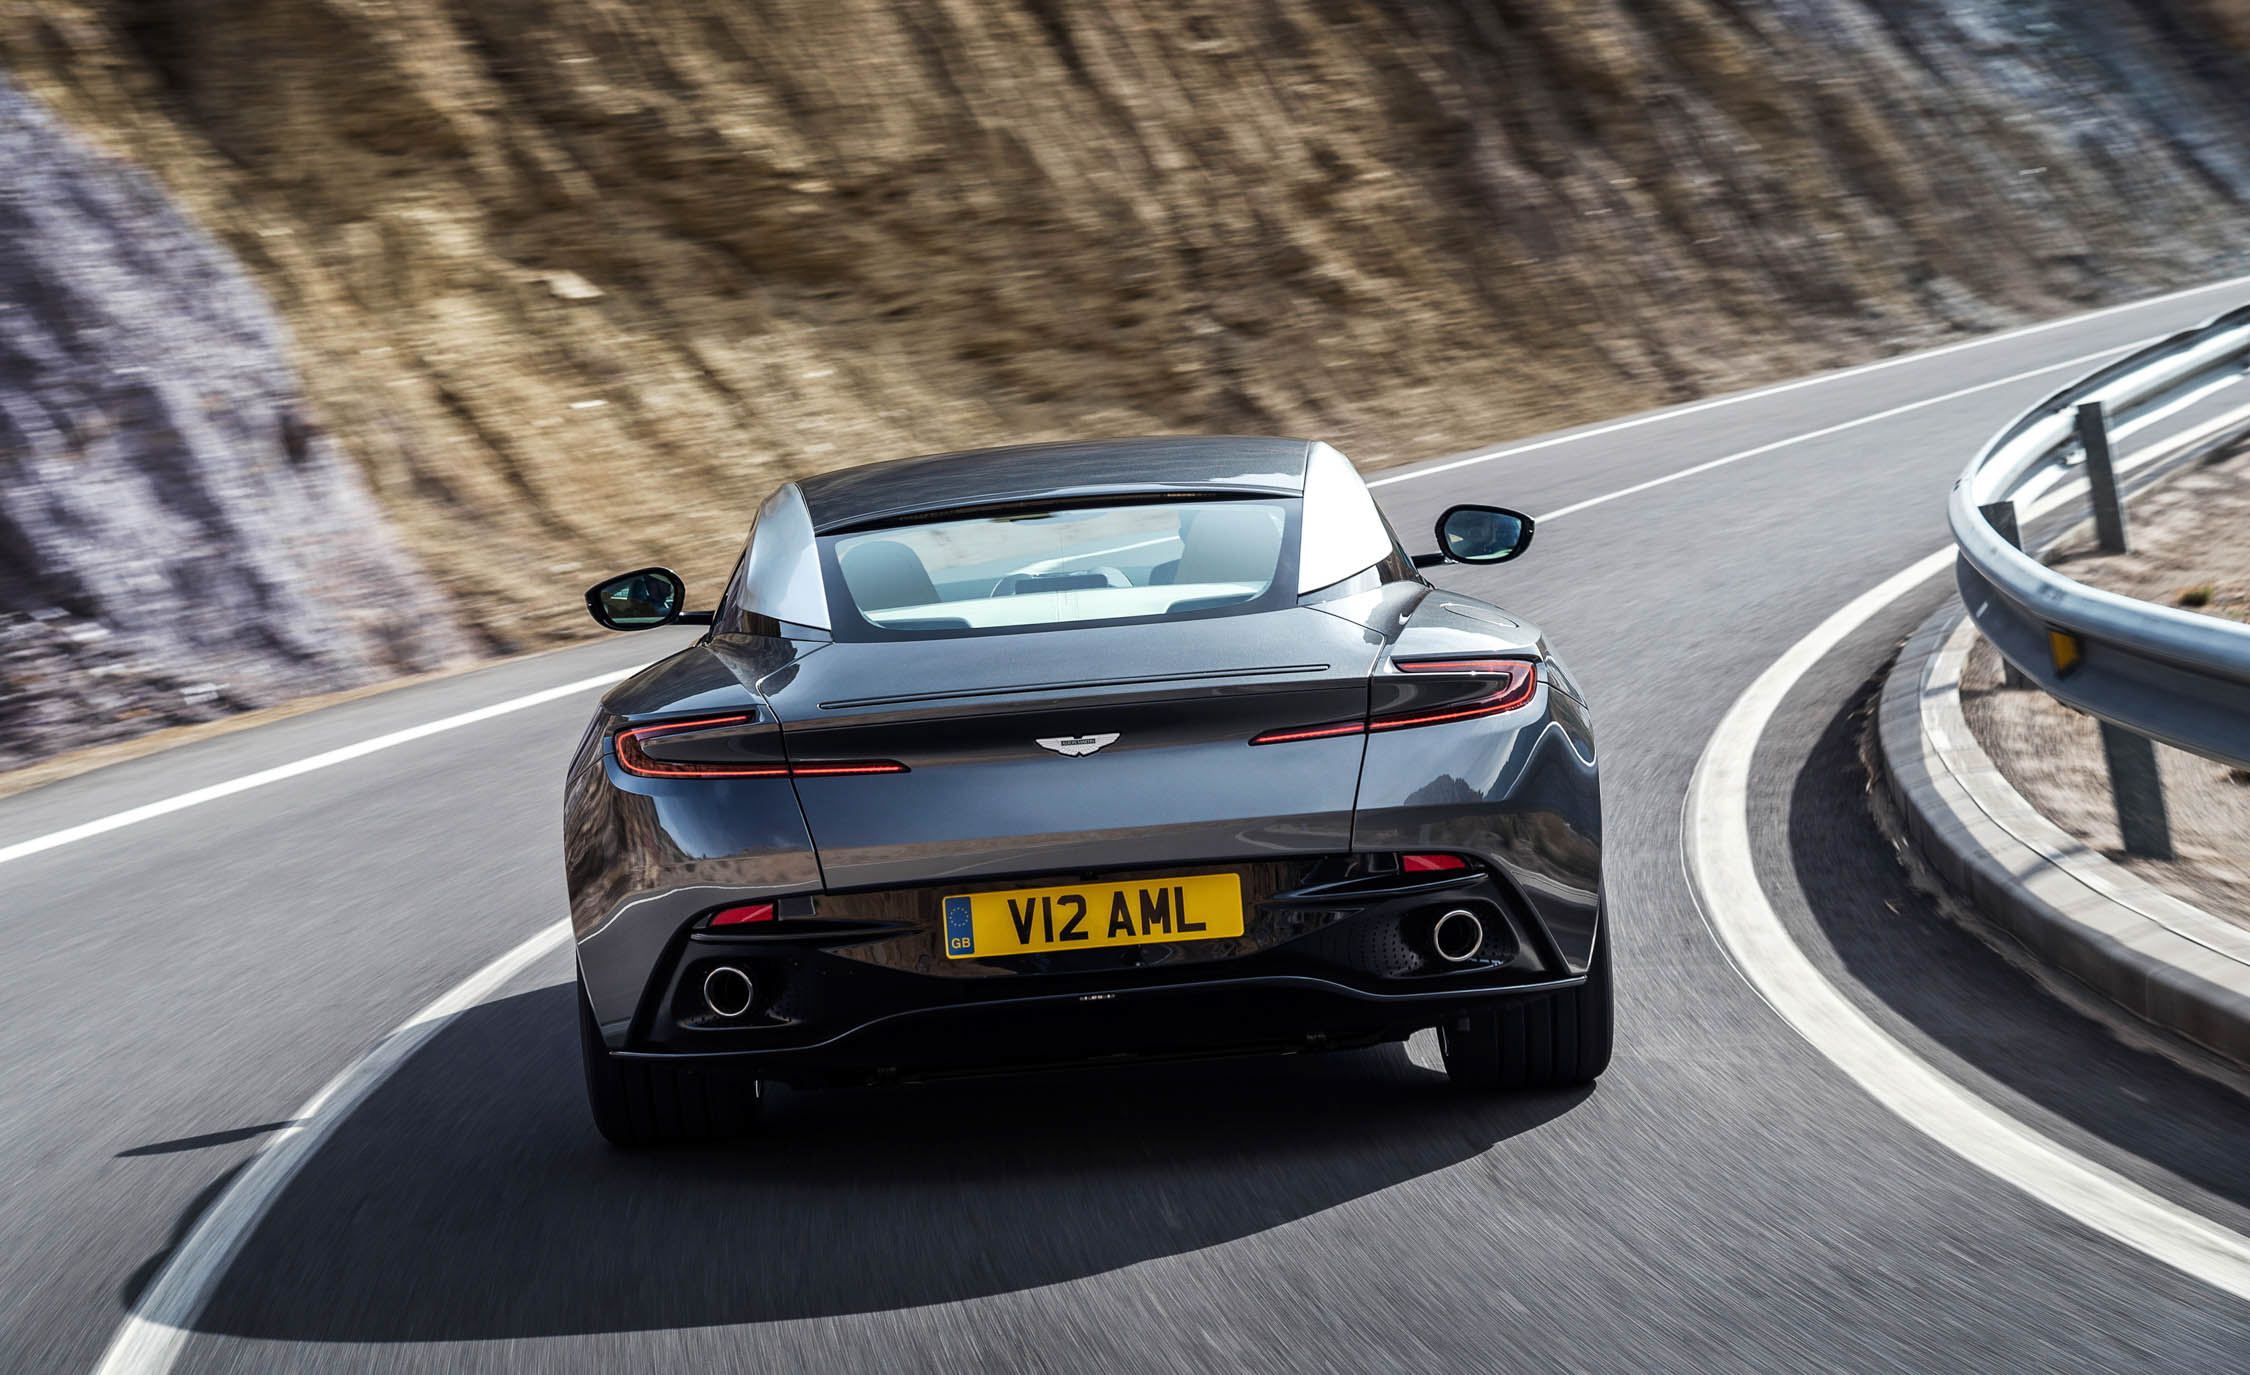 2017 Aston Martin Db11 Test Drive Rear End (View 9 of 22)